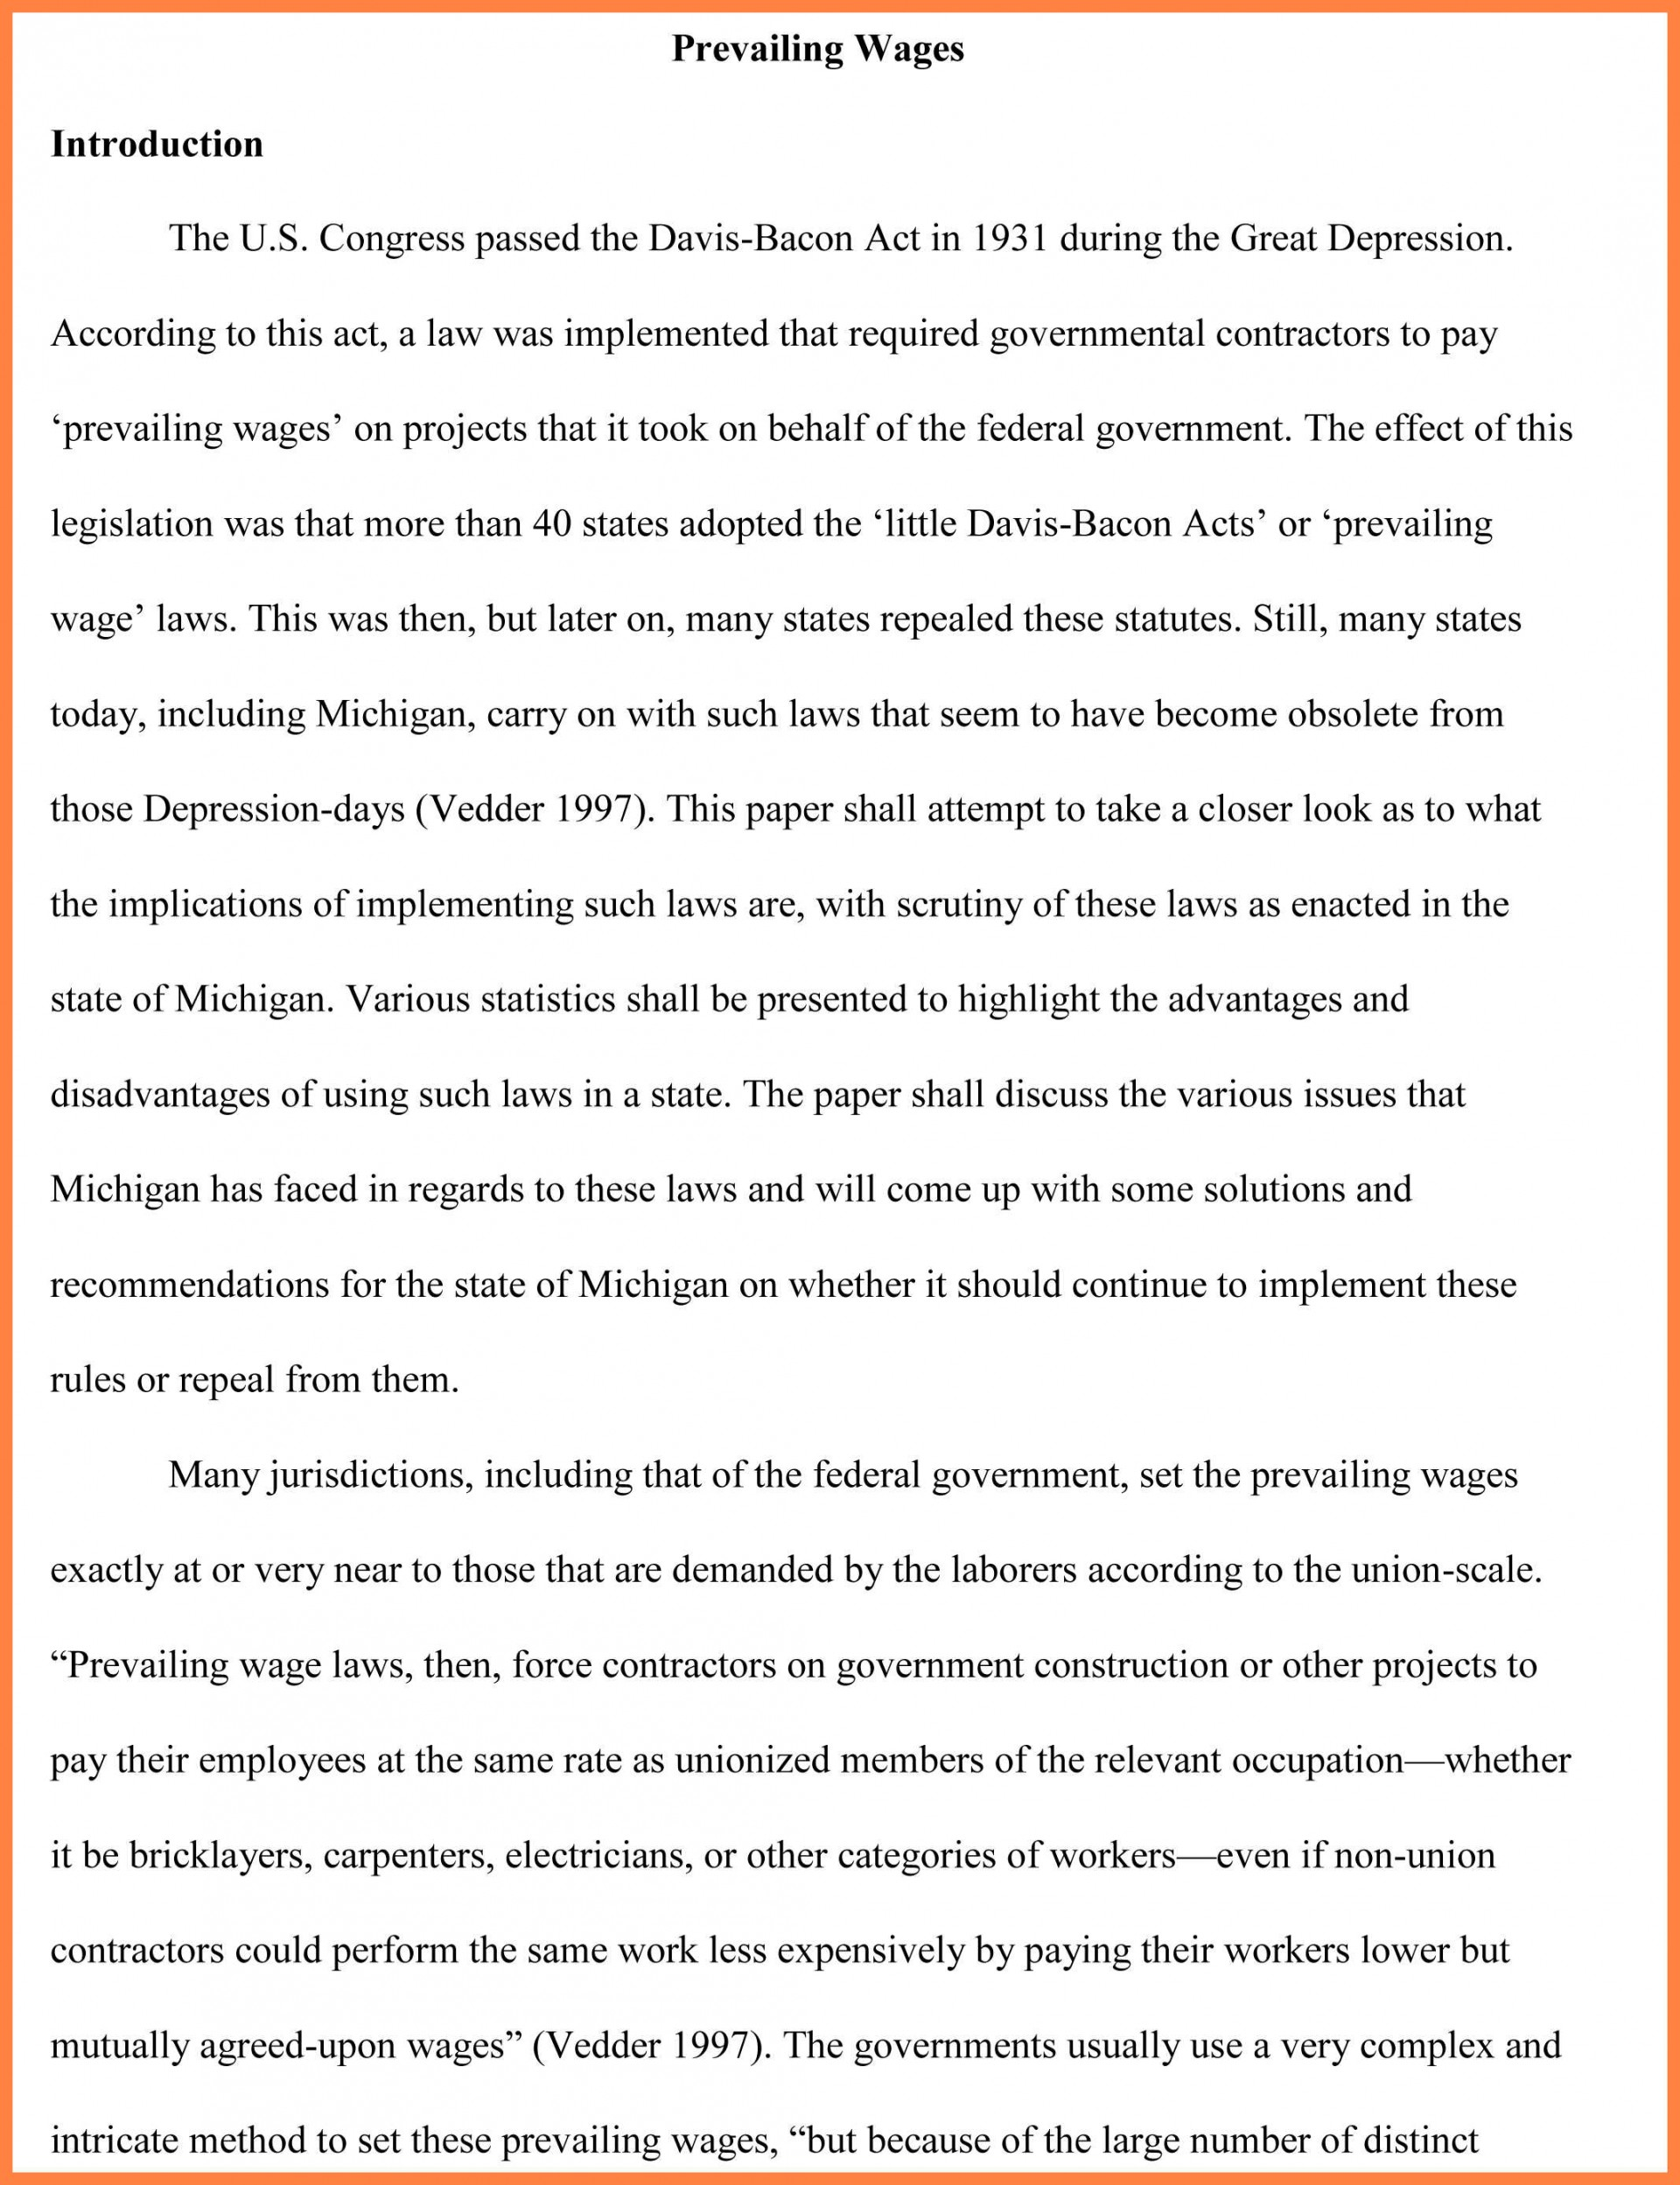 017 Research Paper College Essay Template Colledgepa Format Sample Example For Shocking Apa A 6th Edition 2015 Citation 1920